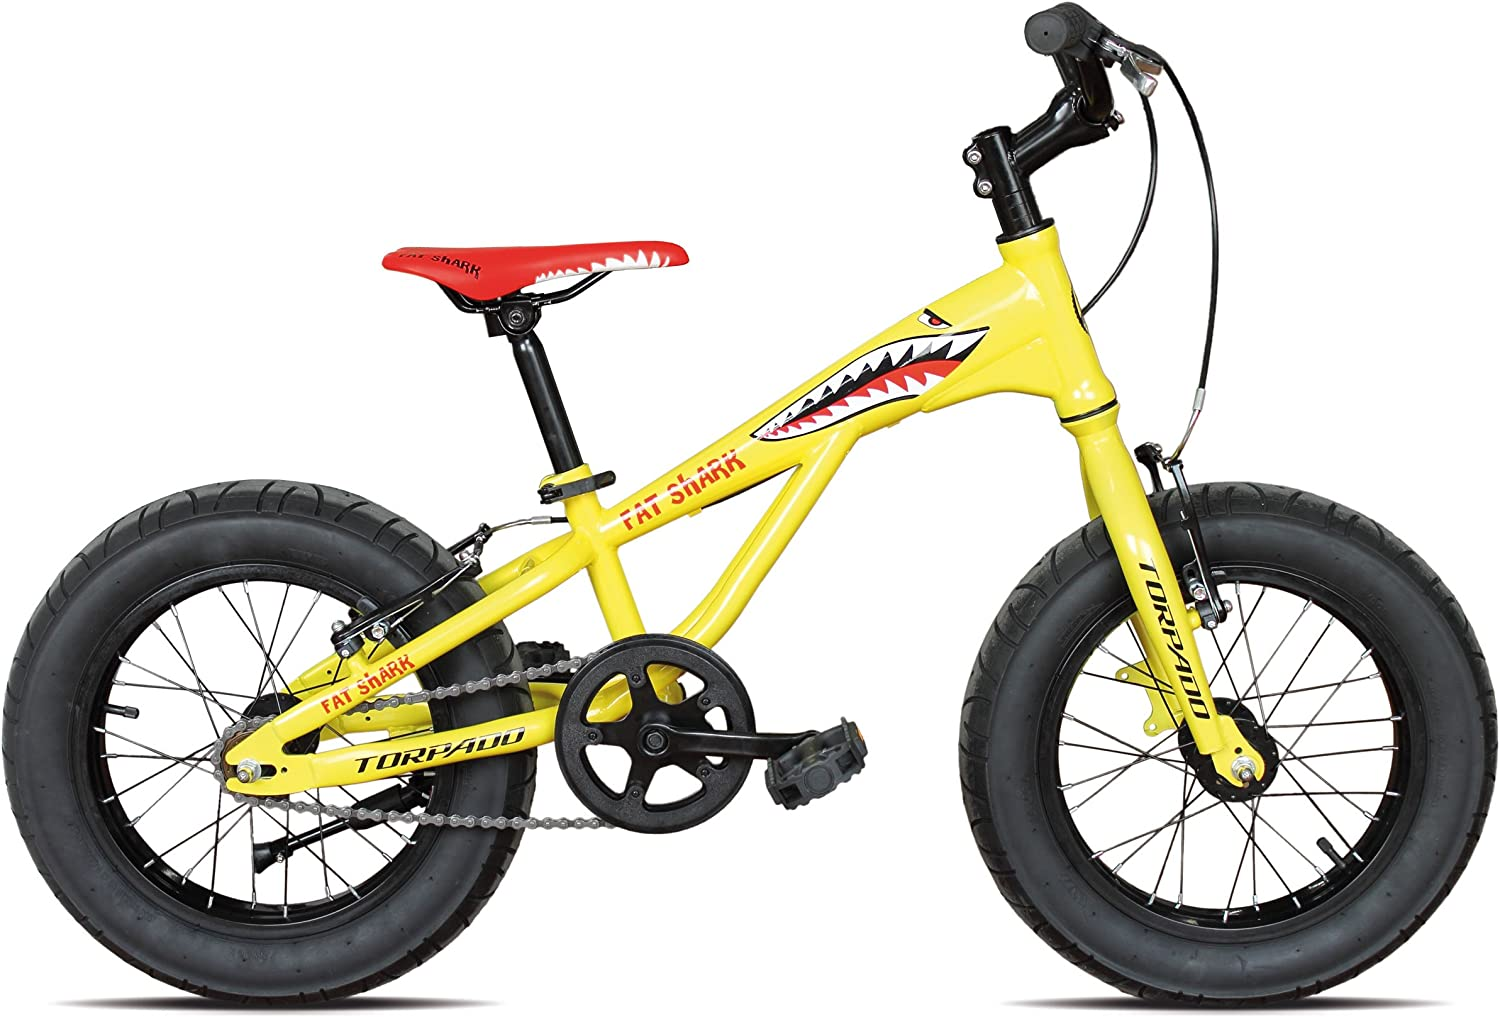 TORPADO &apos Bicicleta Fat Bike Fat Shark 16